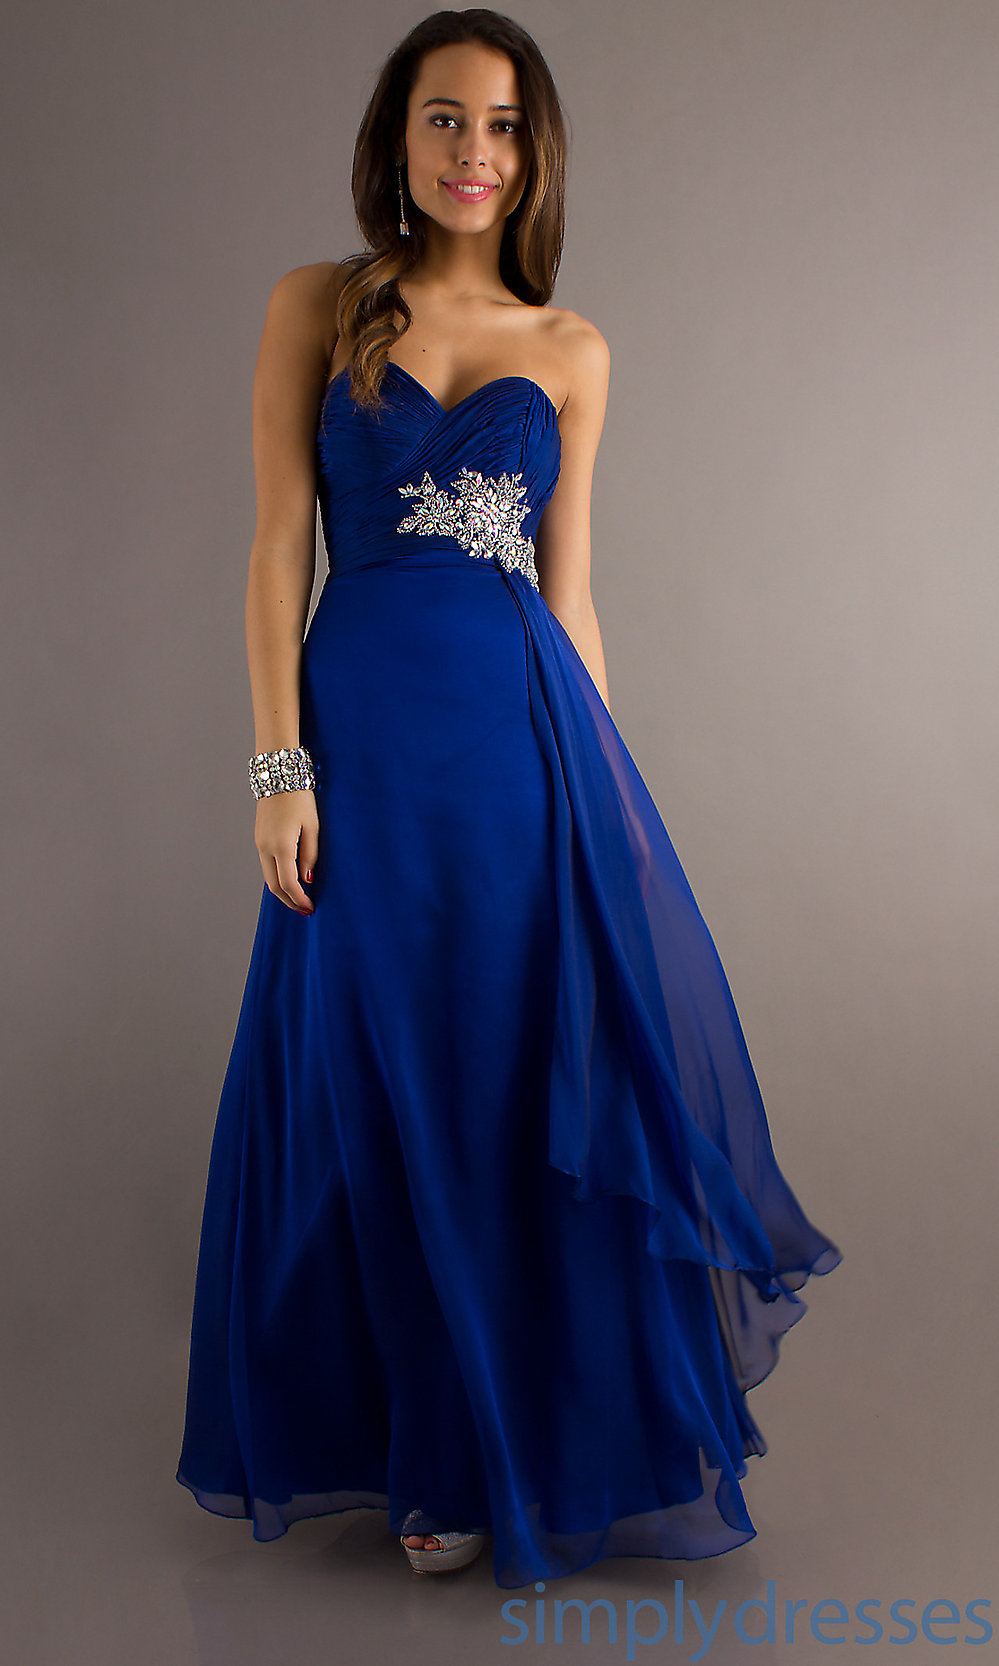 royal blue bridesmaid dresses uk 20142015 fashion